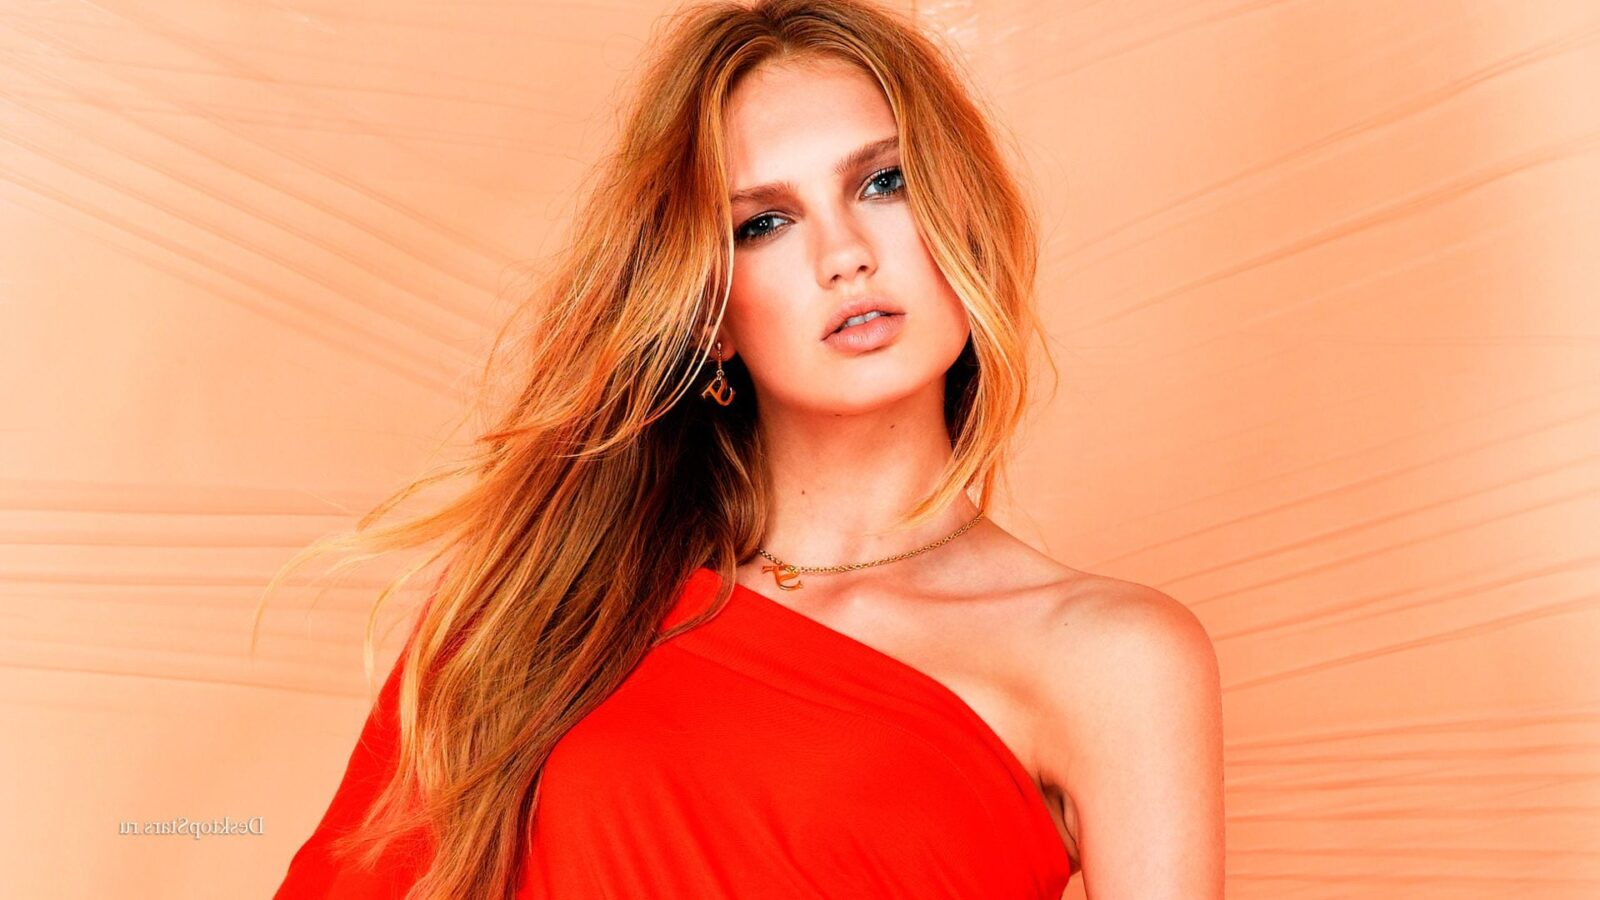 Romee Strijd in red dress background